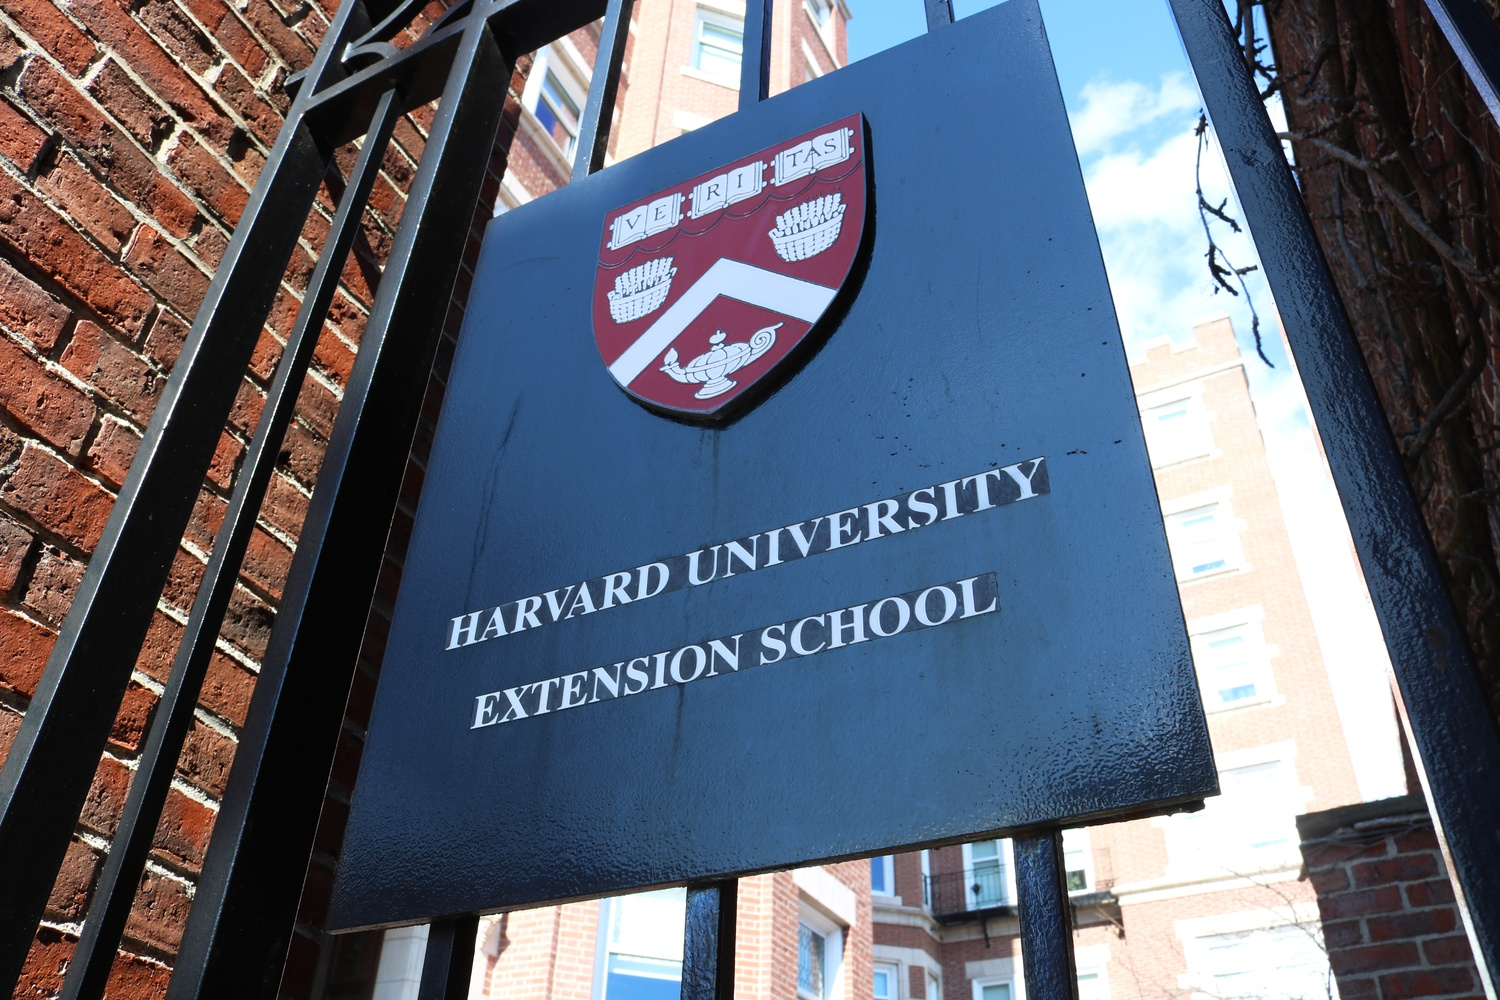 This past week, four people were allegedly laid off at the Harvard Extension School without the school properly following union contract procedures.